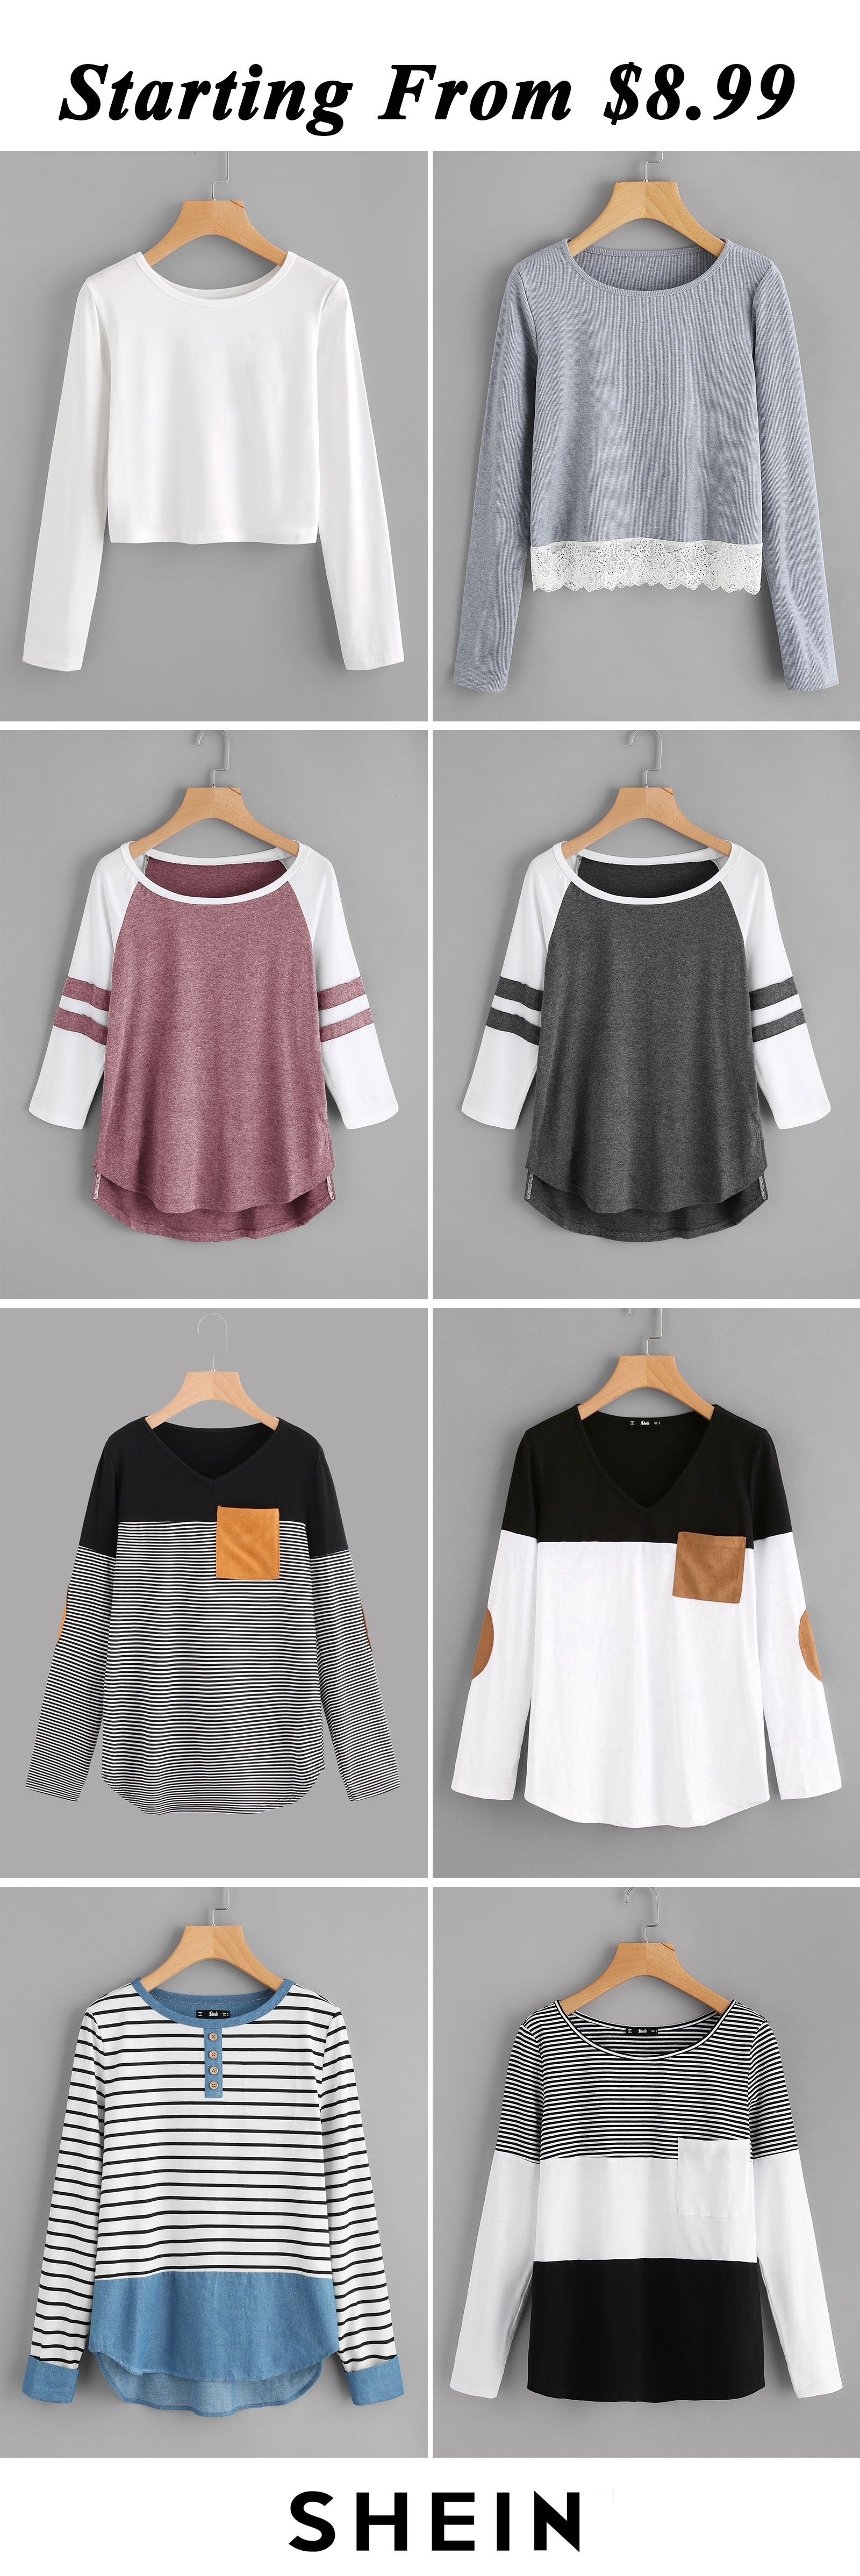 Starting from korean style pinterest clothes clothing